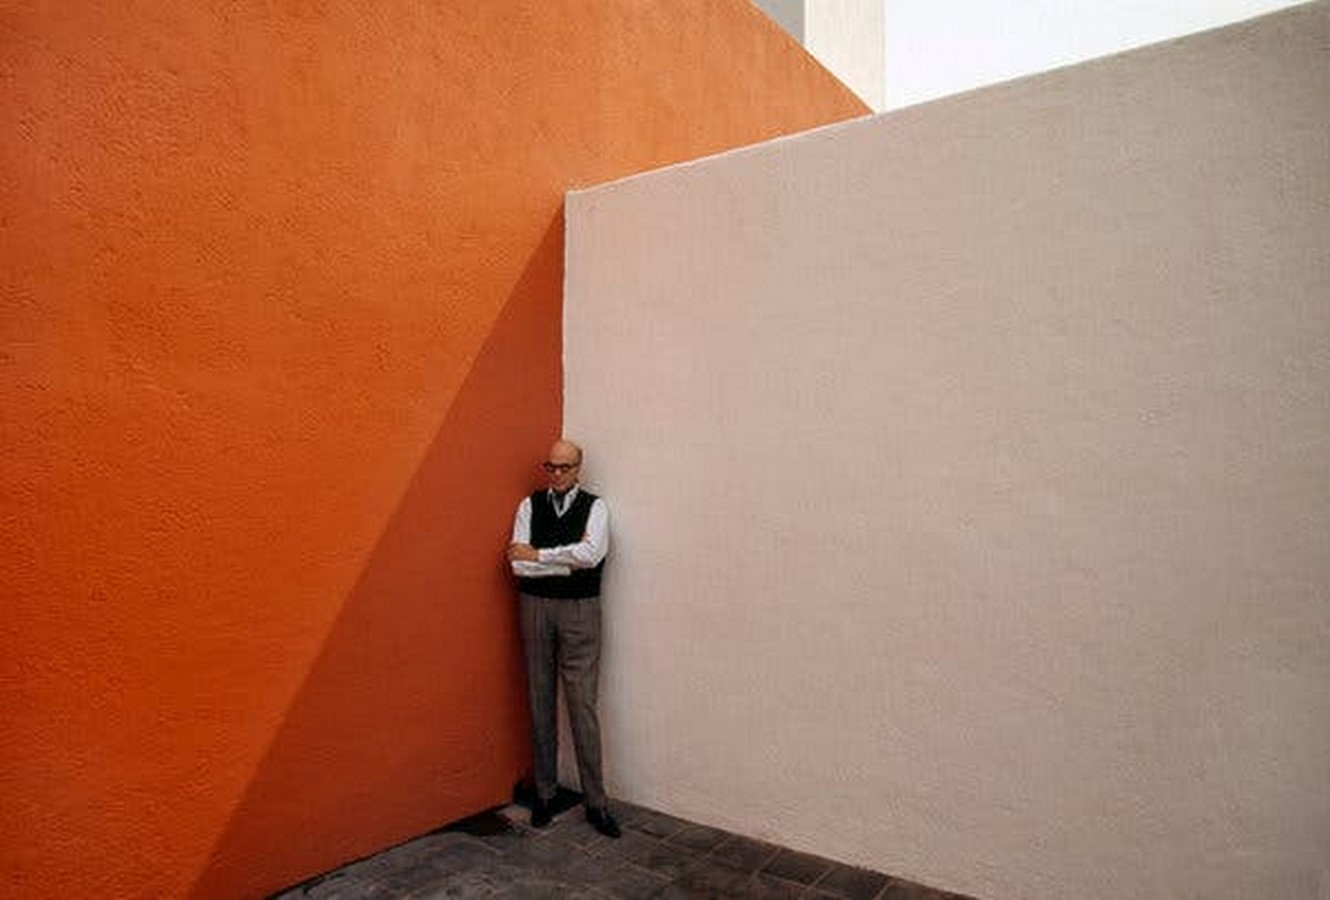 https://www.re-thinkingthefuture.com/wp-content/uploads/2021/04/A3934-The-controversial-life-and-works-of-Luis-Barragan-IMAGE-1.jpg